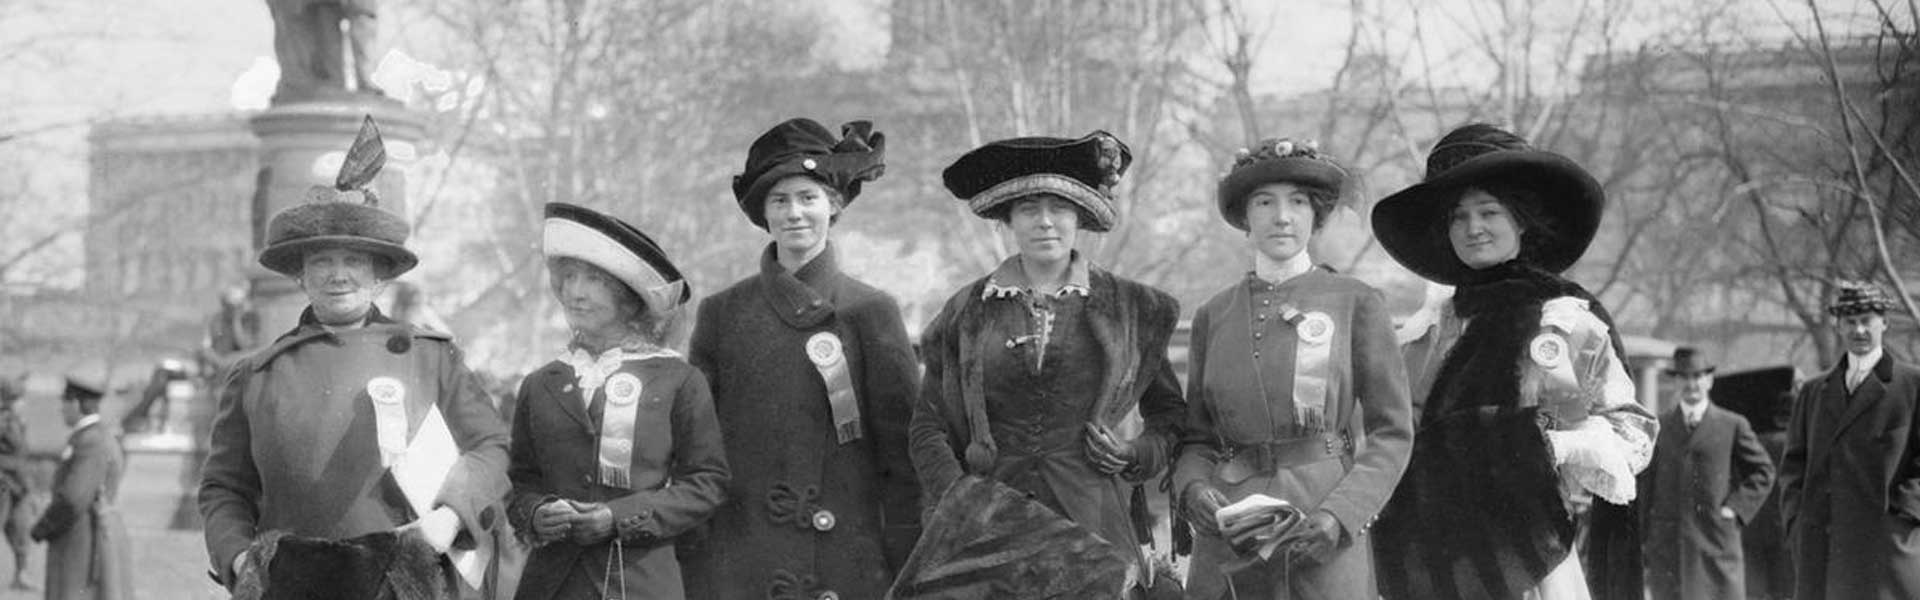 Suffrage March on Washington